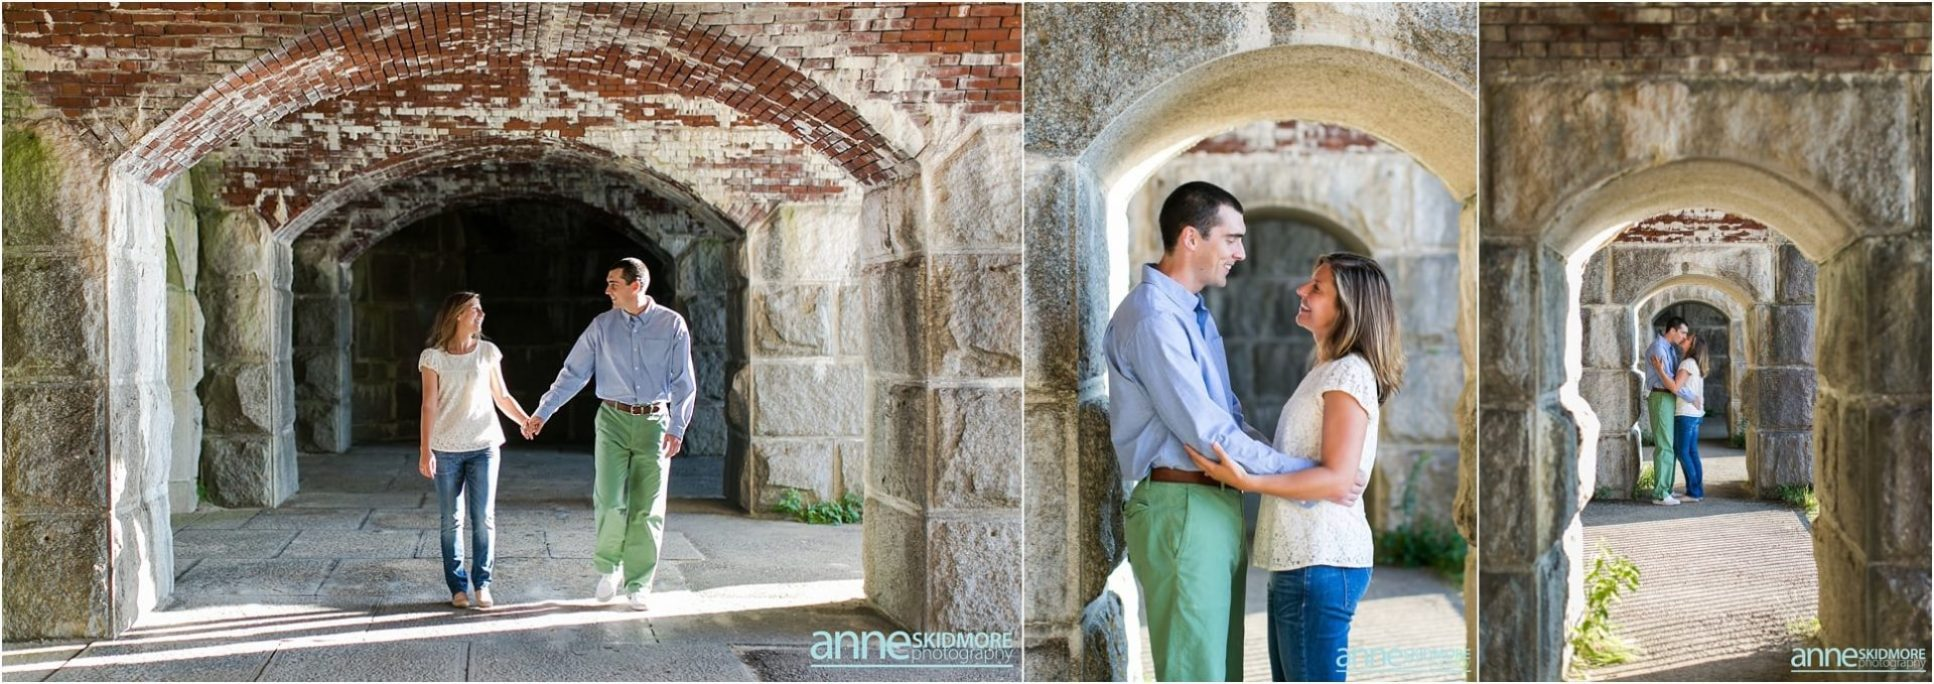 Popham_Beach_Engagement__003